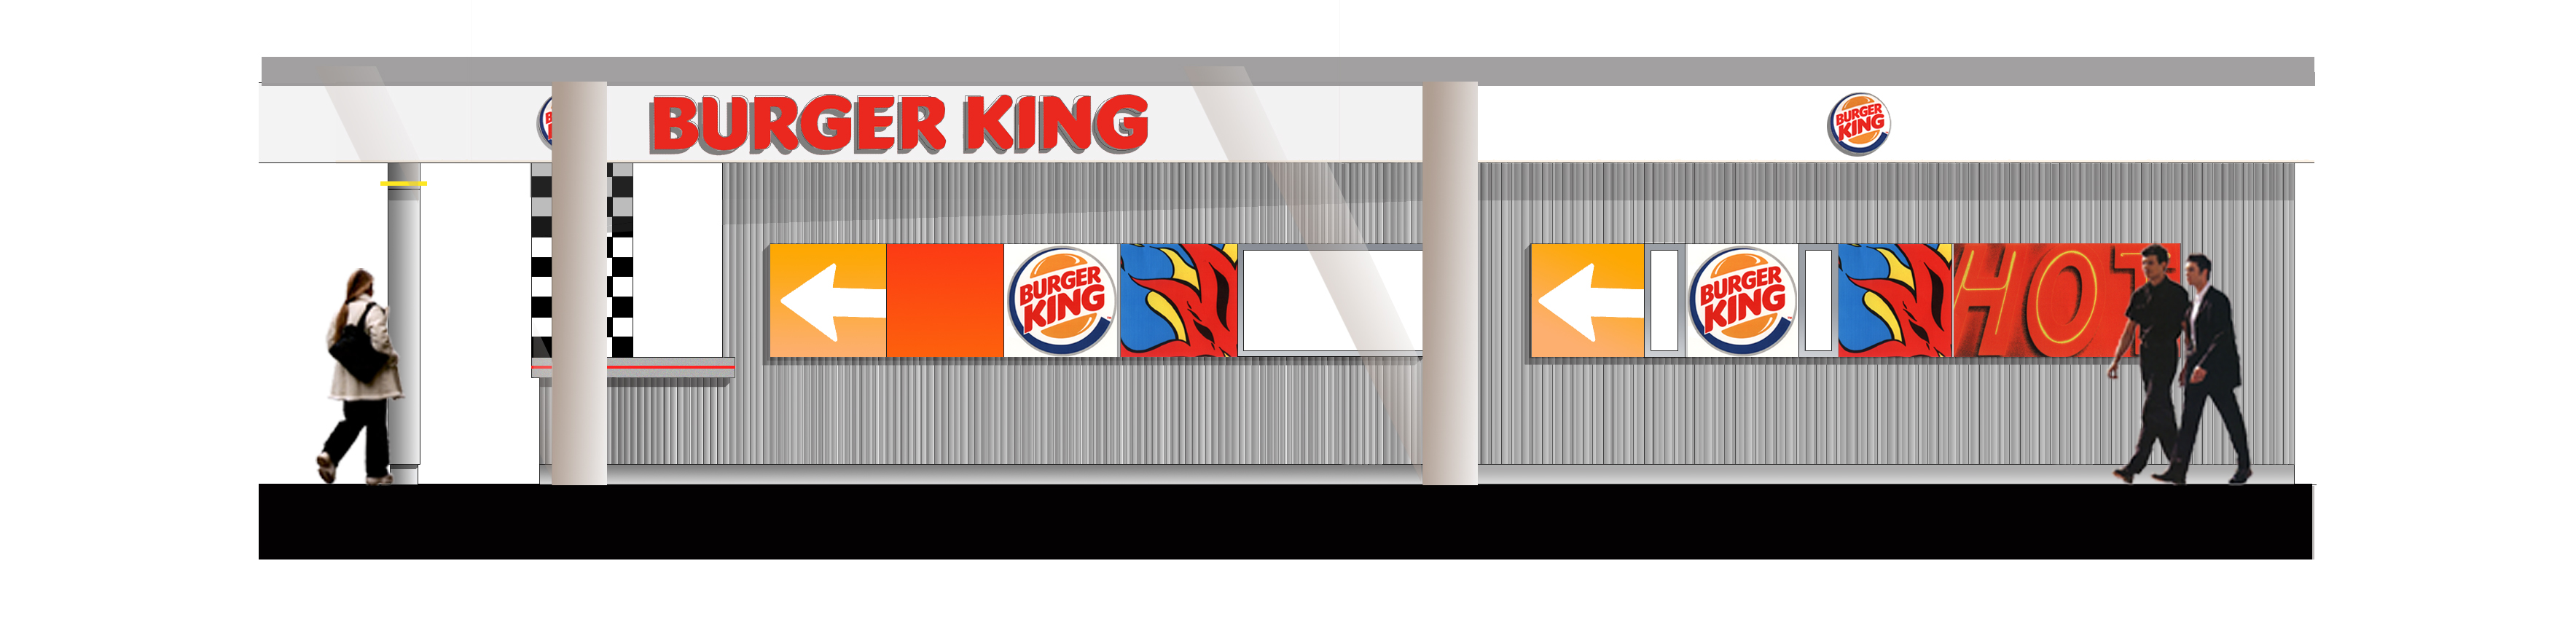 Burger King design coleraine